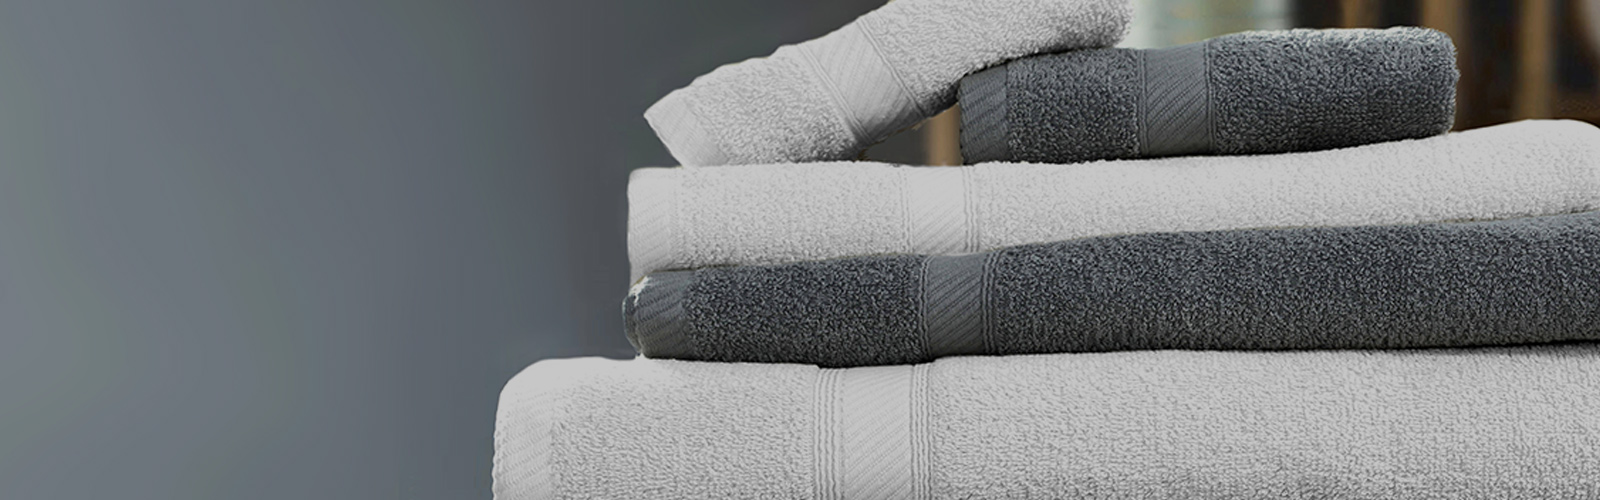 Powel Towel or Beach Towel – Which Material is Best For Both Use